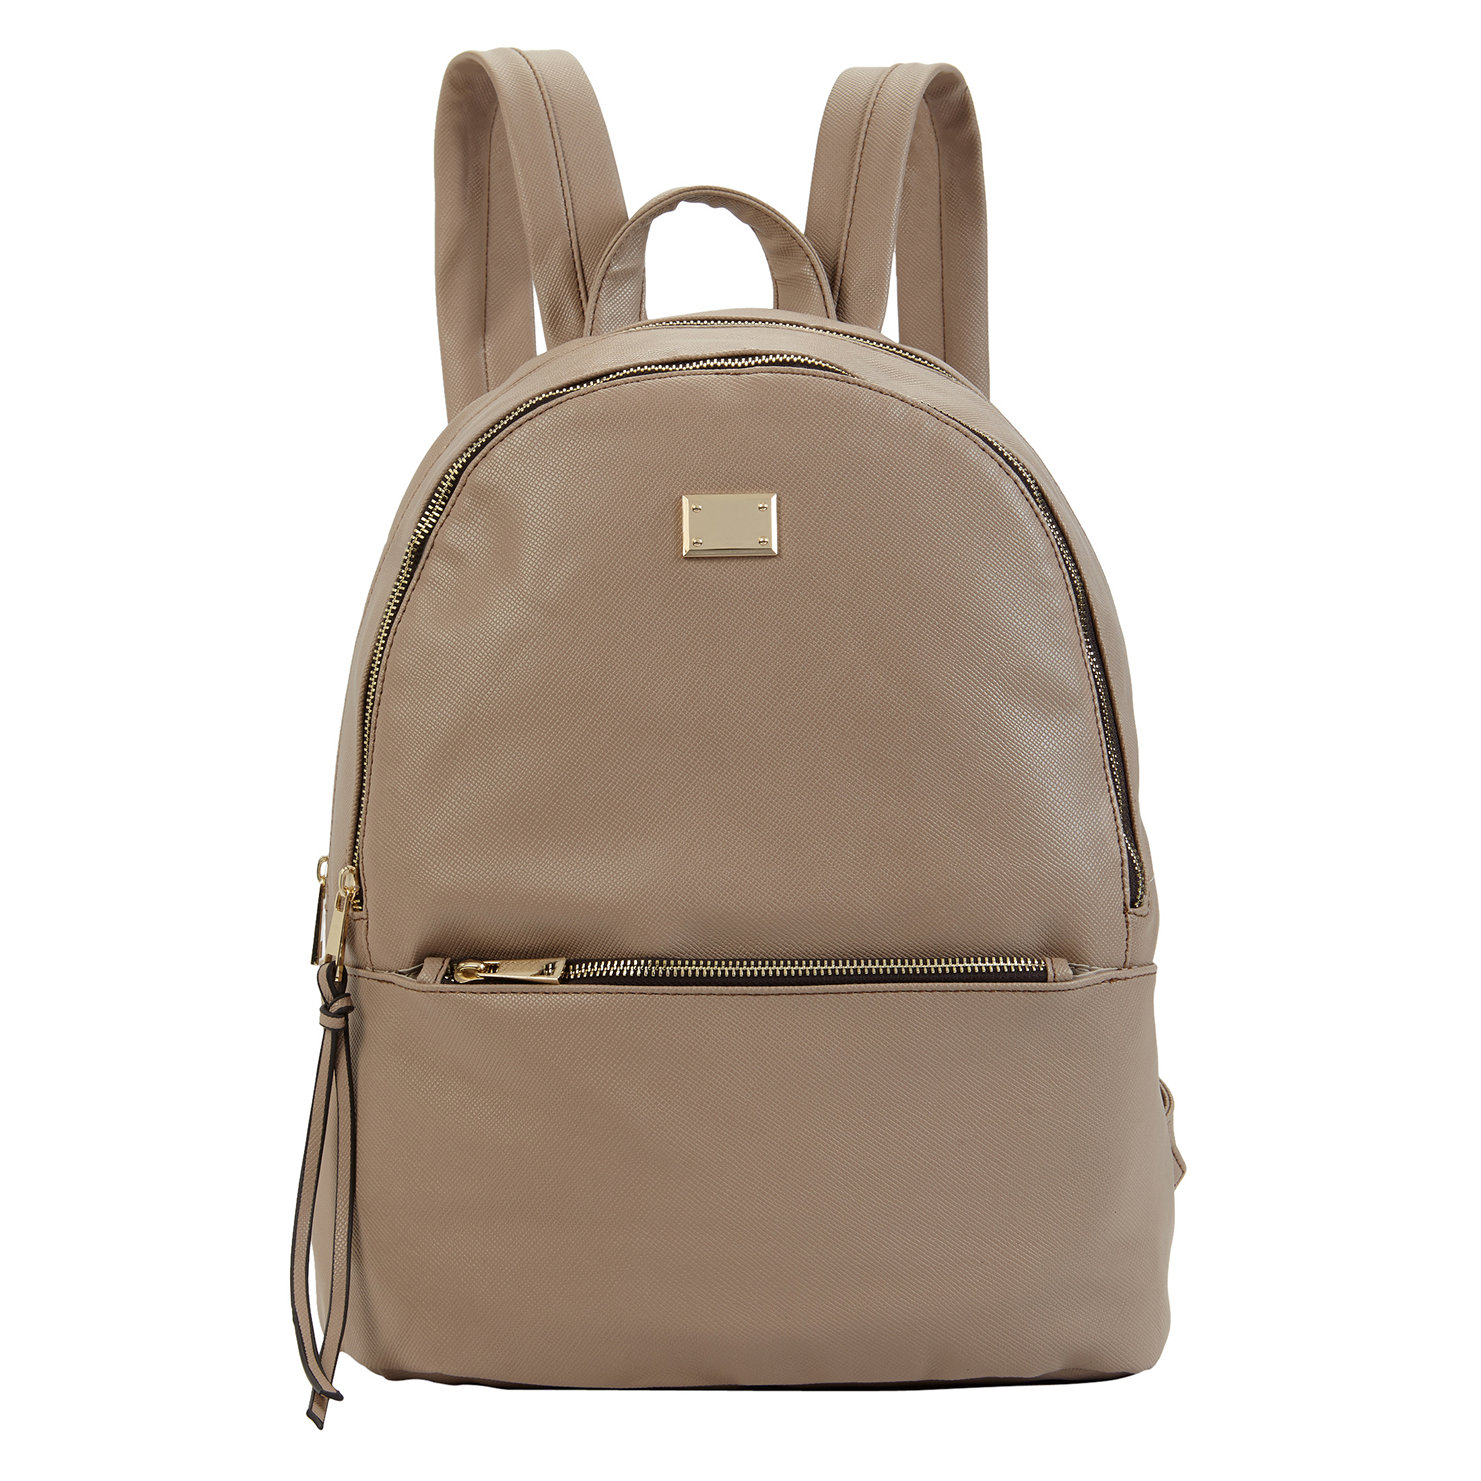 sac taupe call it spring2